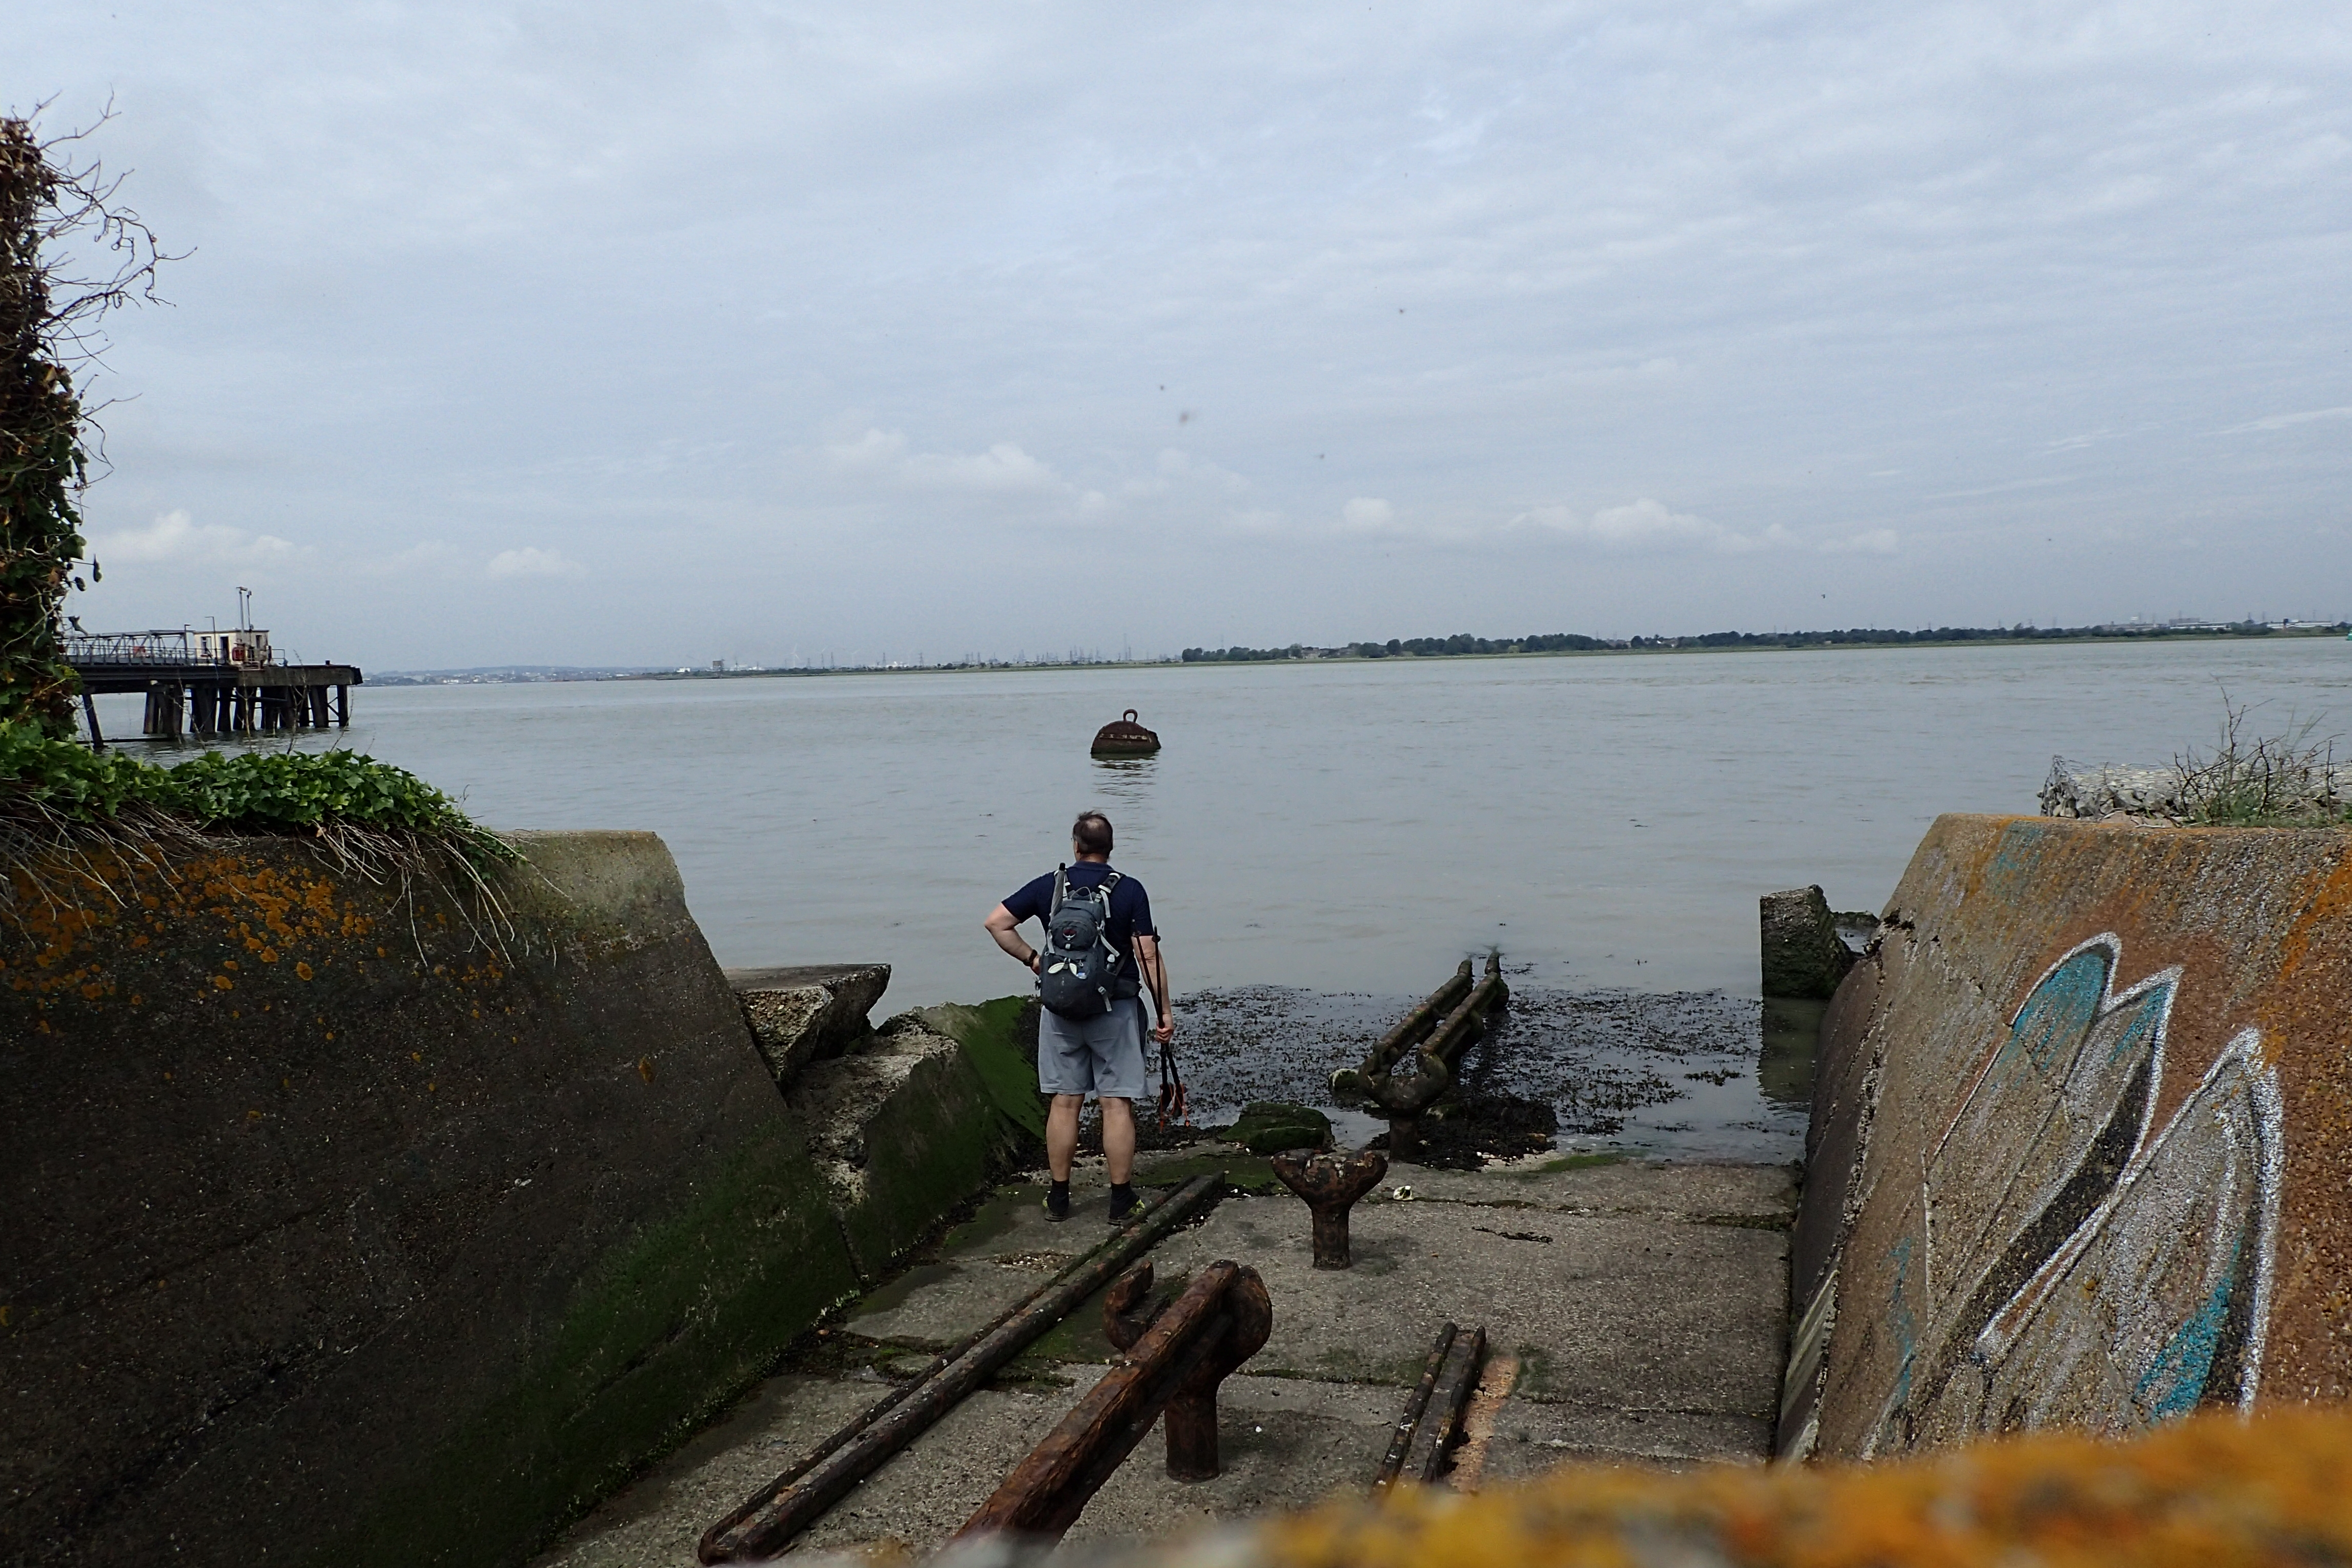 Exploring the remains of a launch site for the Brennan Torpedo